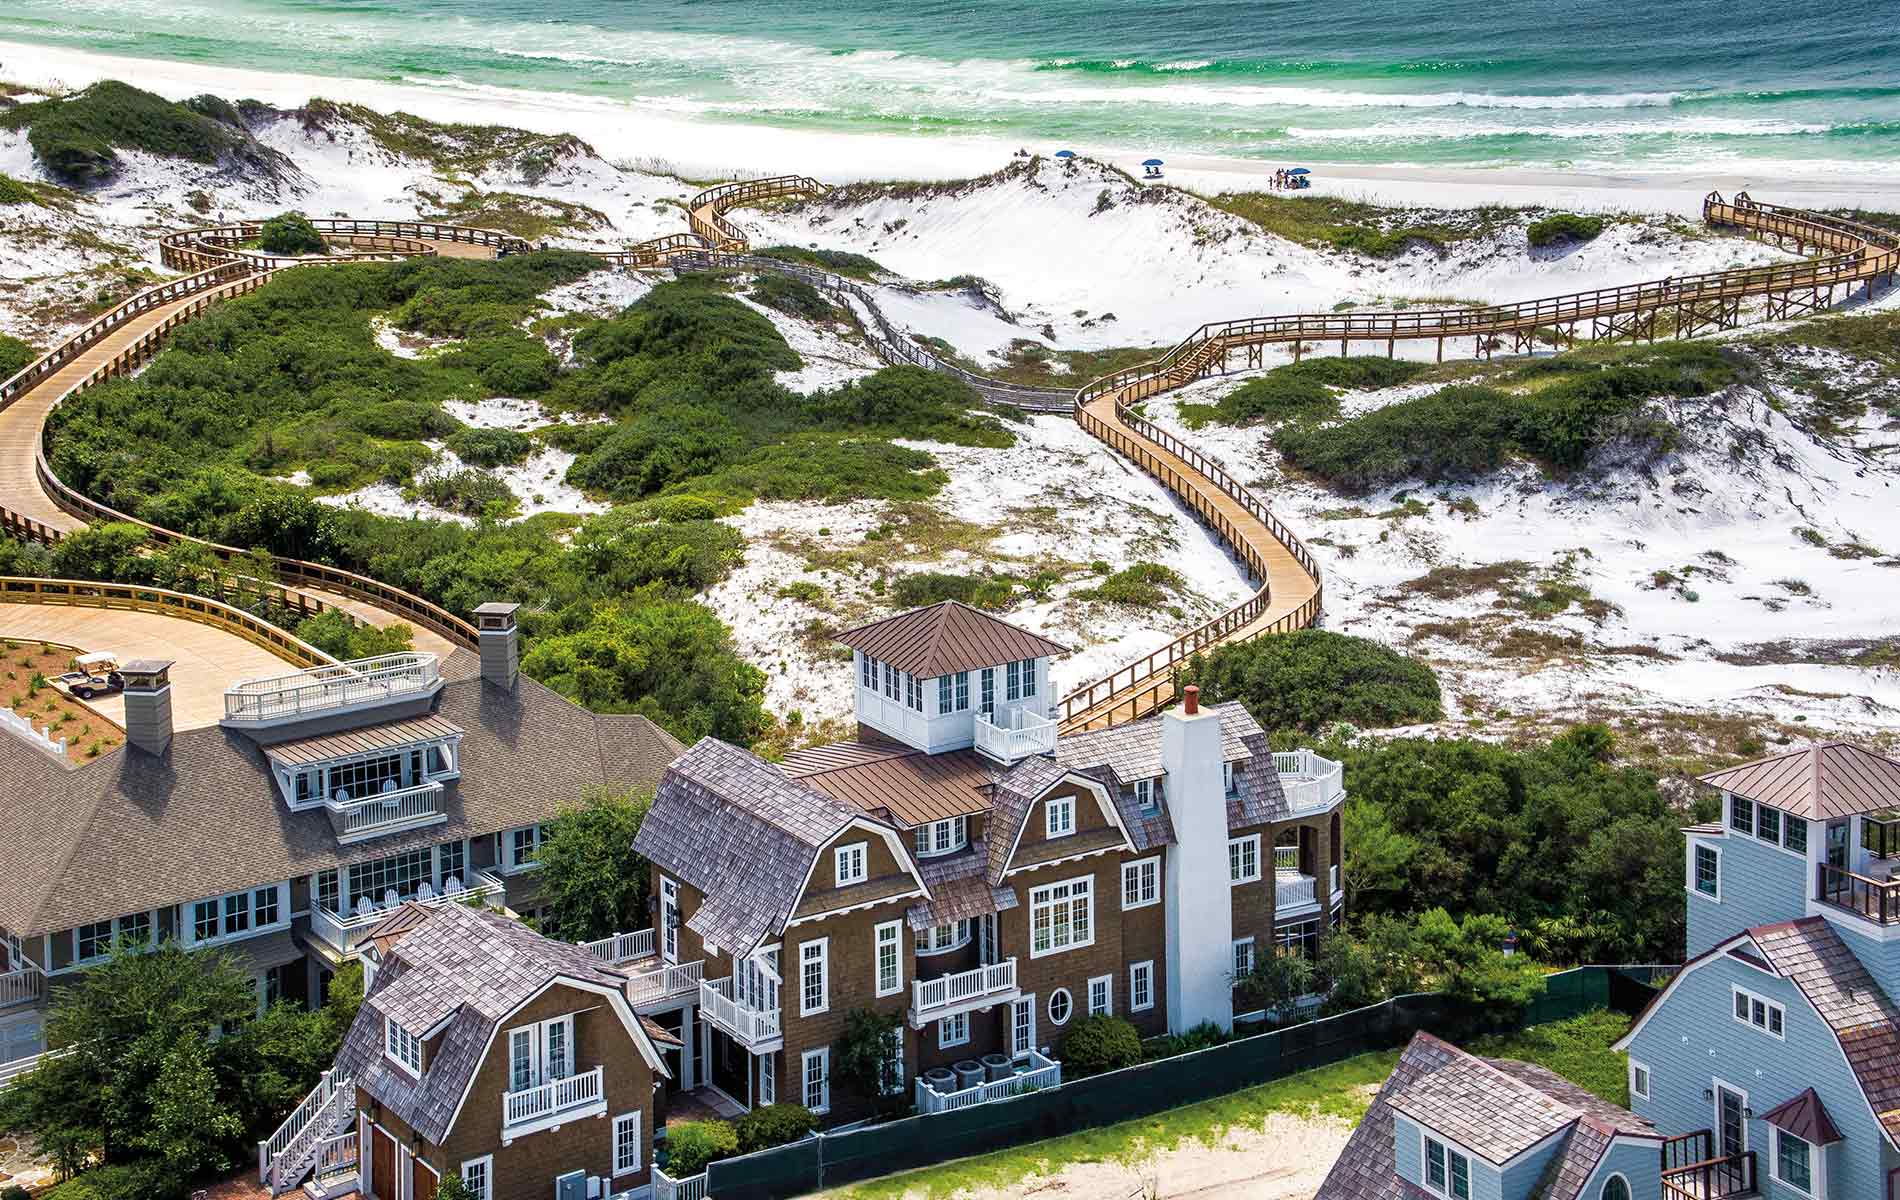 Beautiful aerial shot of Santa Rosa Beach, Florida Linda Miller Luxury Real Estate home and garden 2017